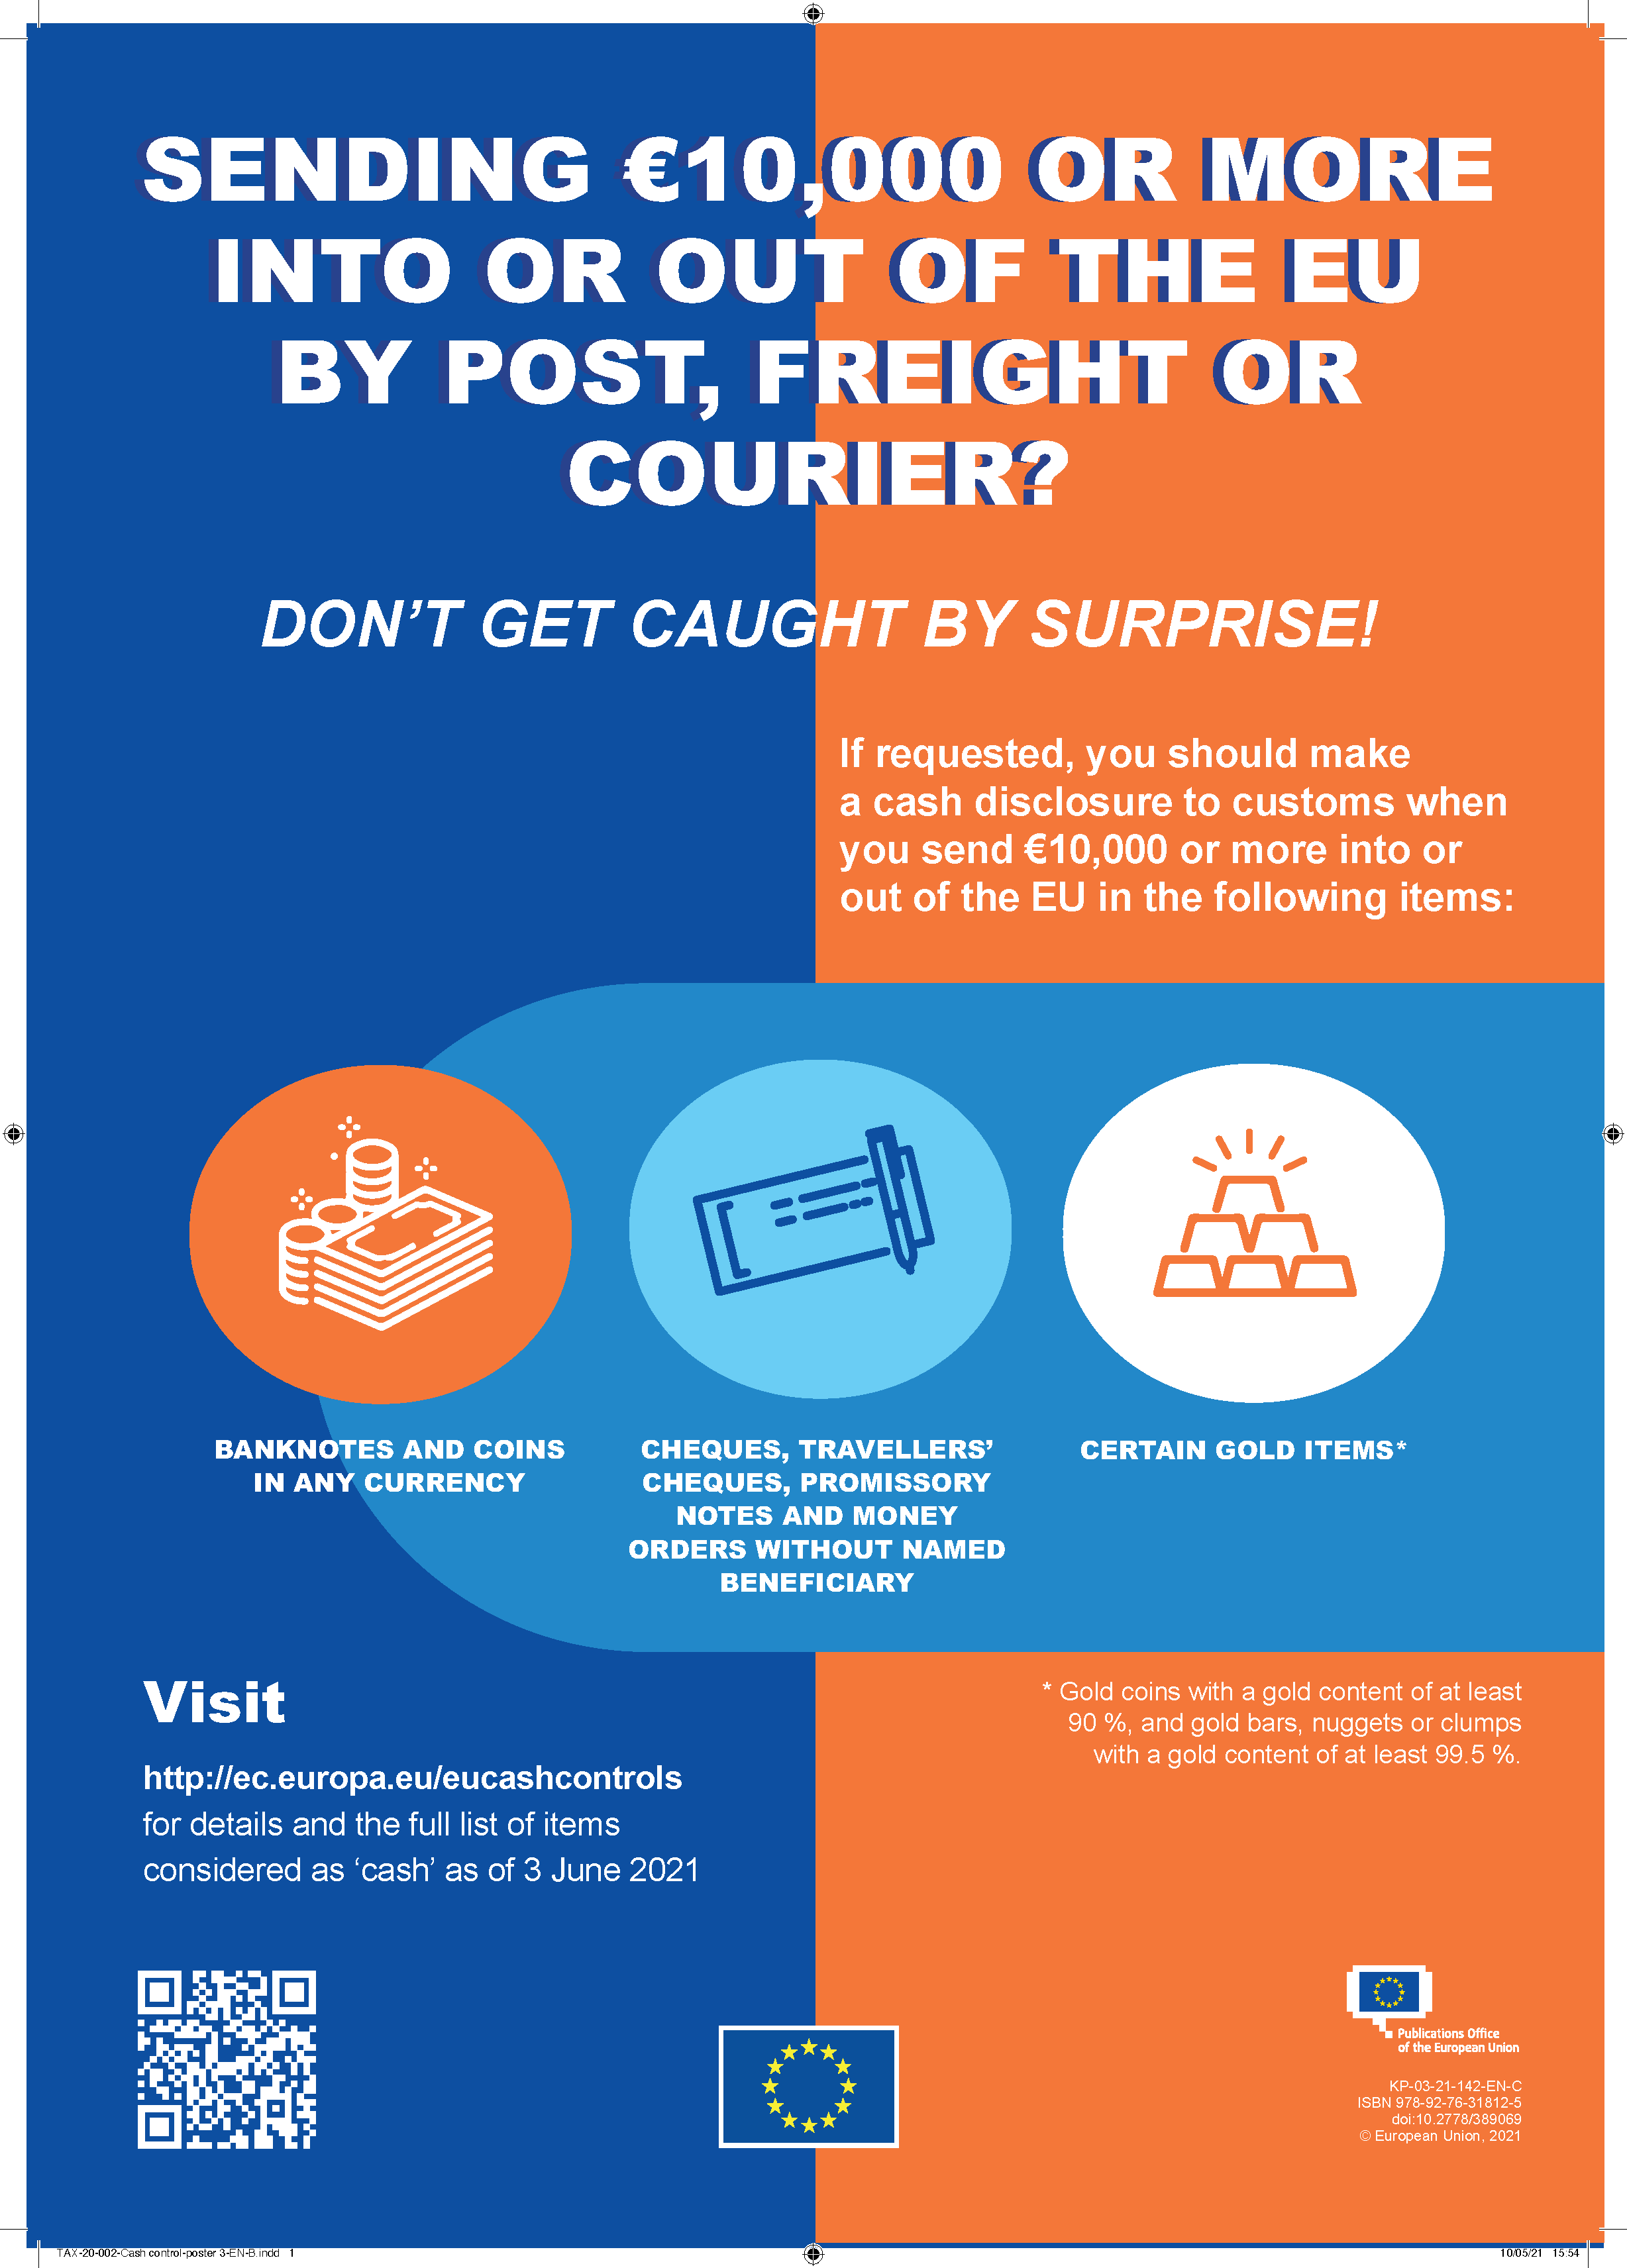 Sending €10,000 or more into or out of the EU by post, freight or courier?